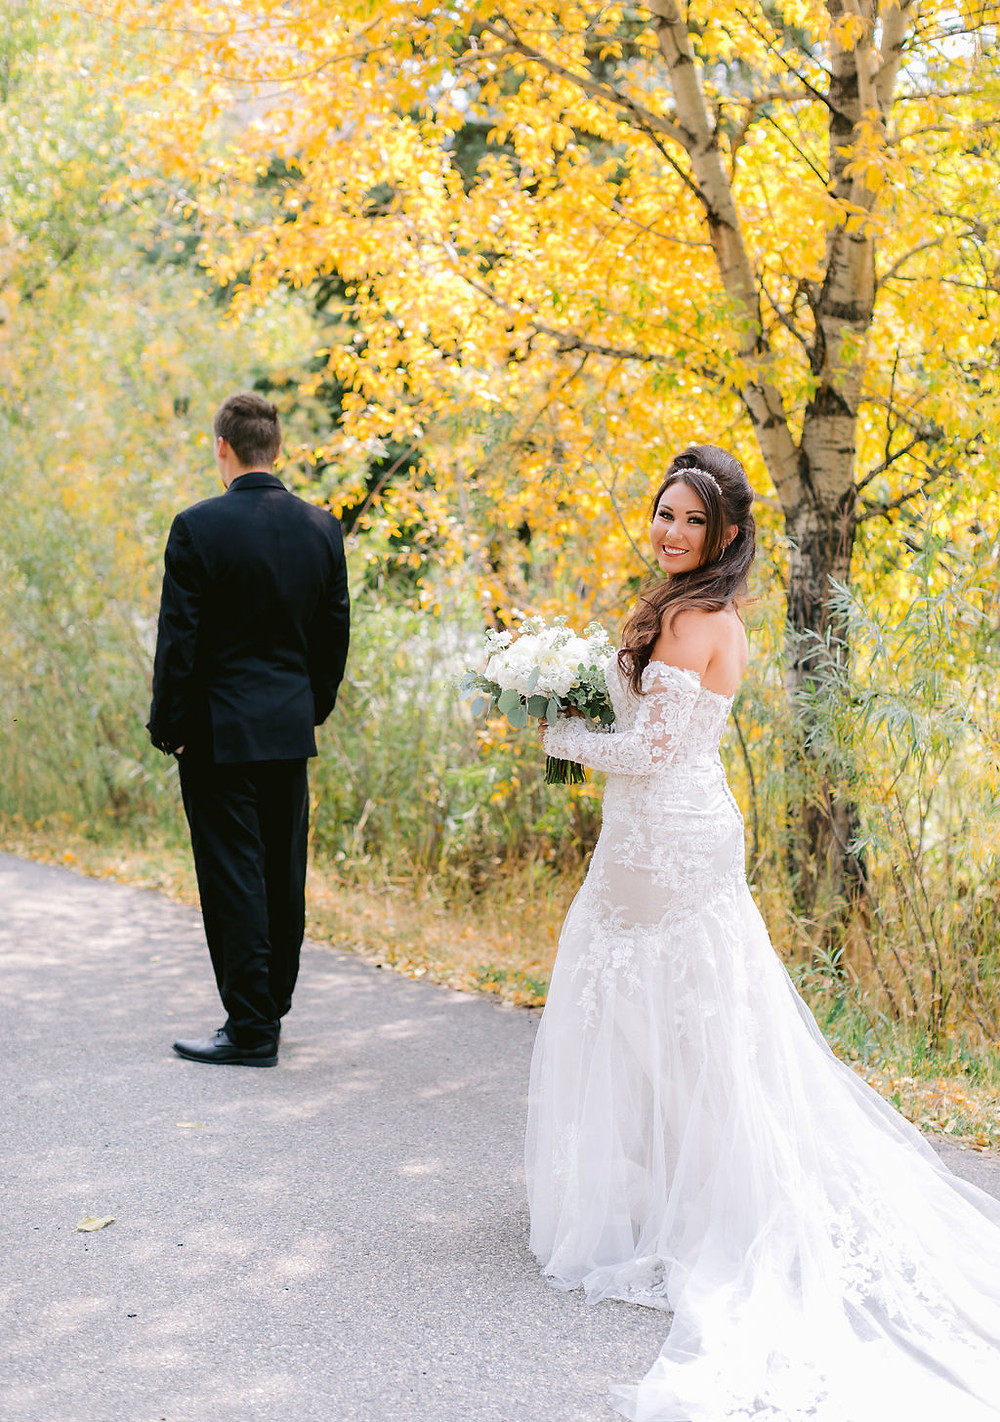 Vail Wedding at the Golf and Nordic Center. Vail Mountain top wedding pictures. Destination micro wedding. Gold and green and white wedding. First look.